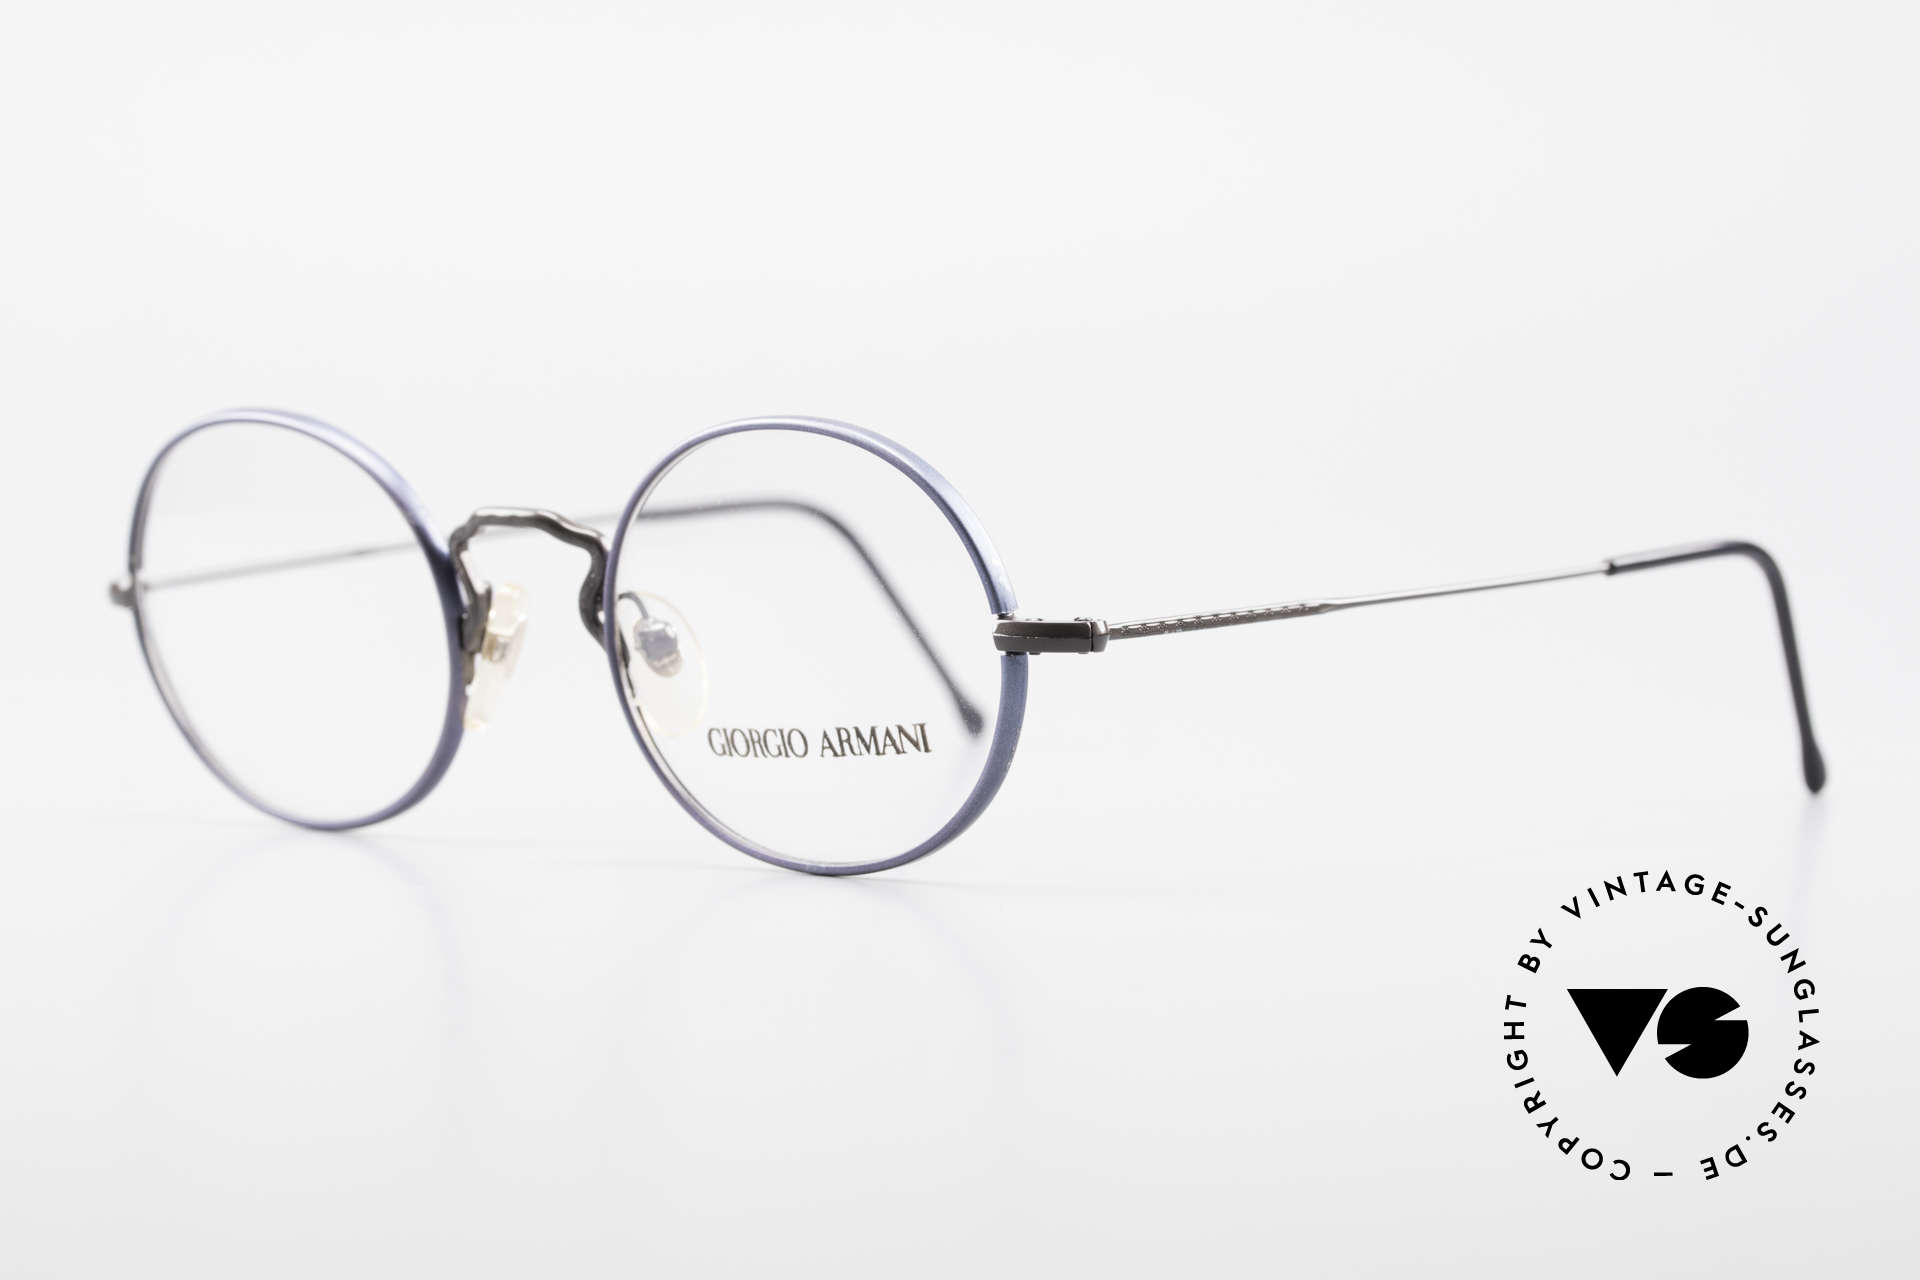 Giorgio Armani 247 No Retro Eyeglasses 90's Oval, frame with subtle engravings & with dark blue rings, Made for Men and Women